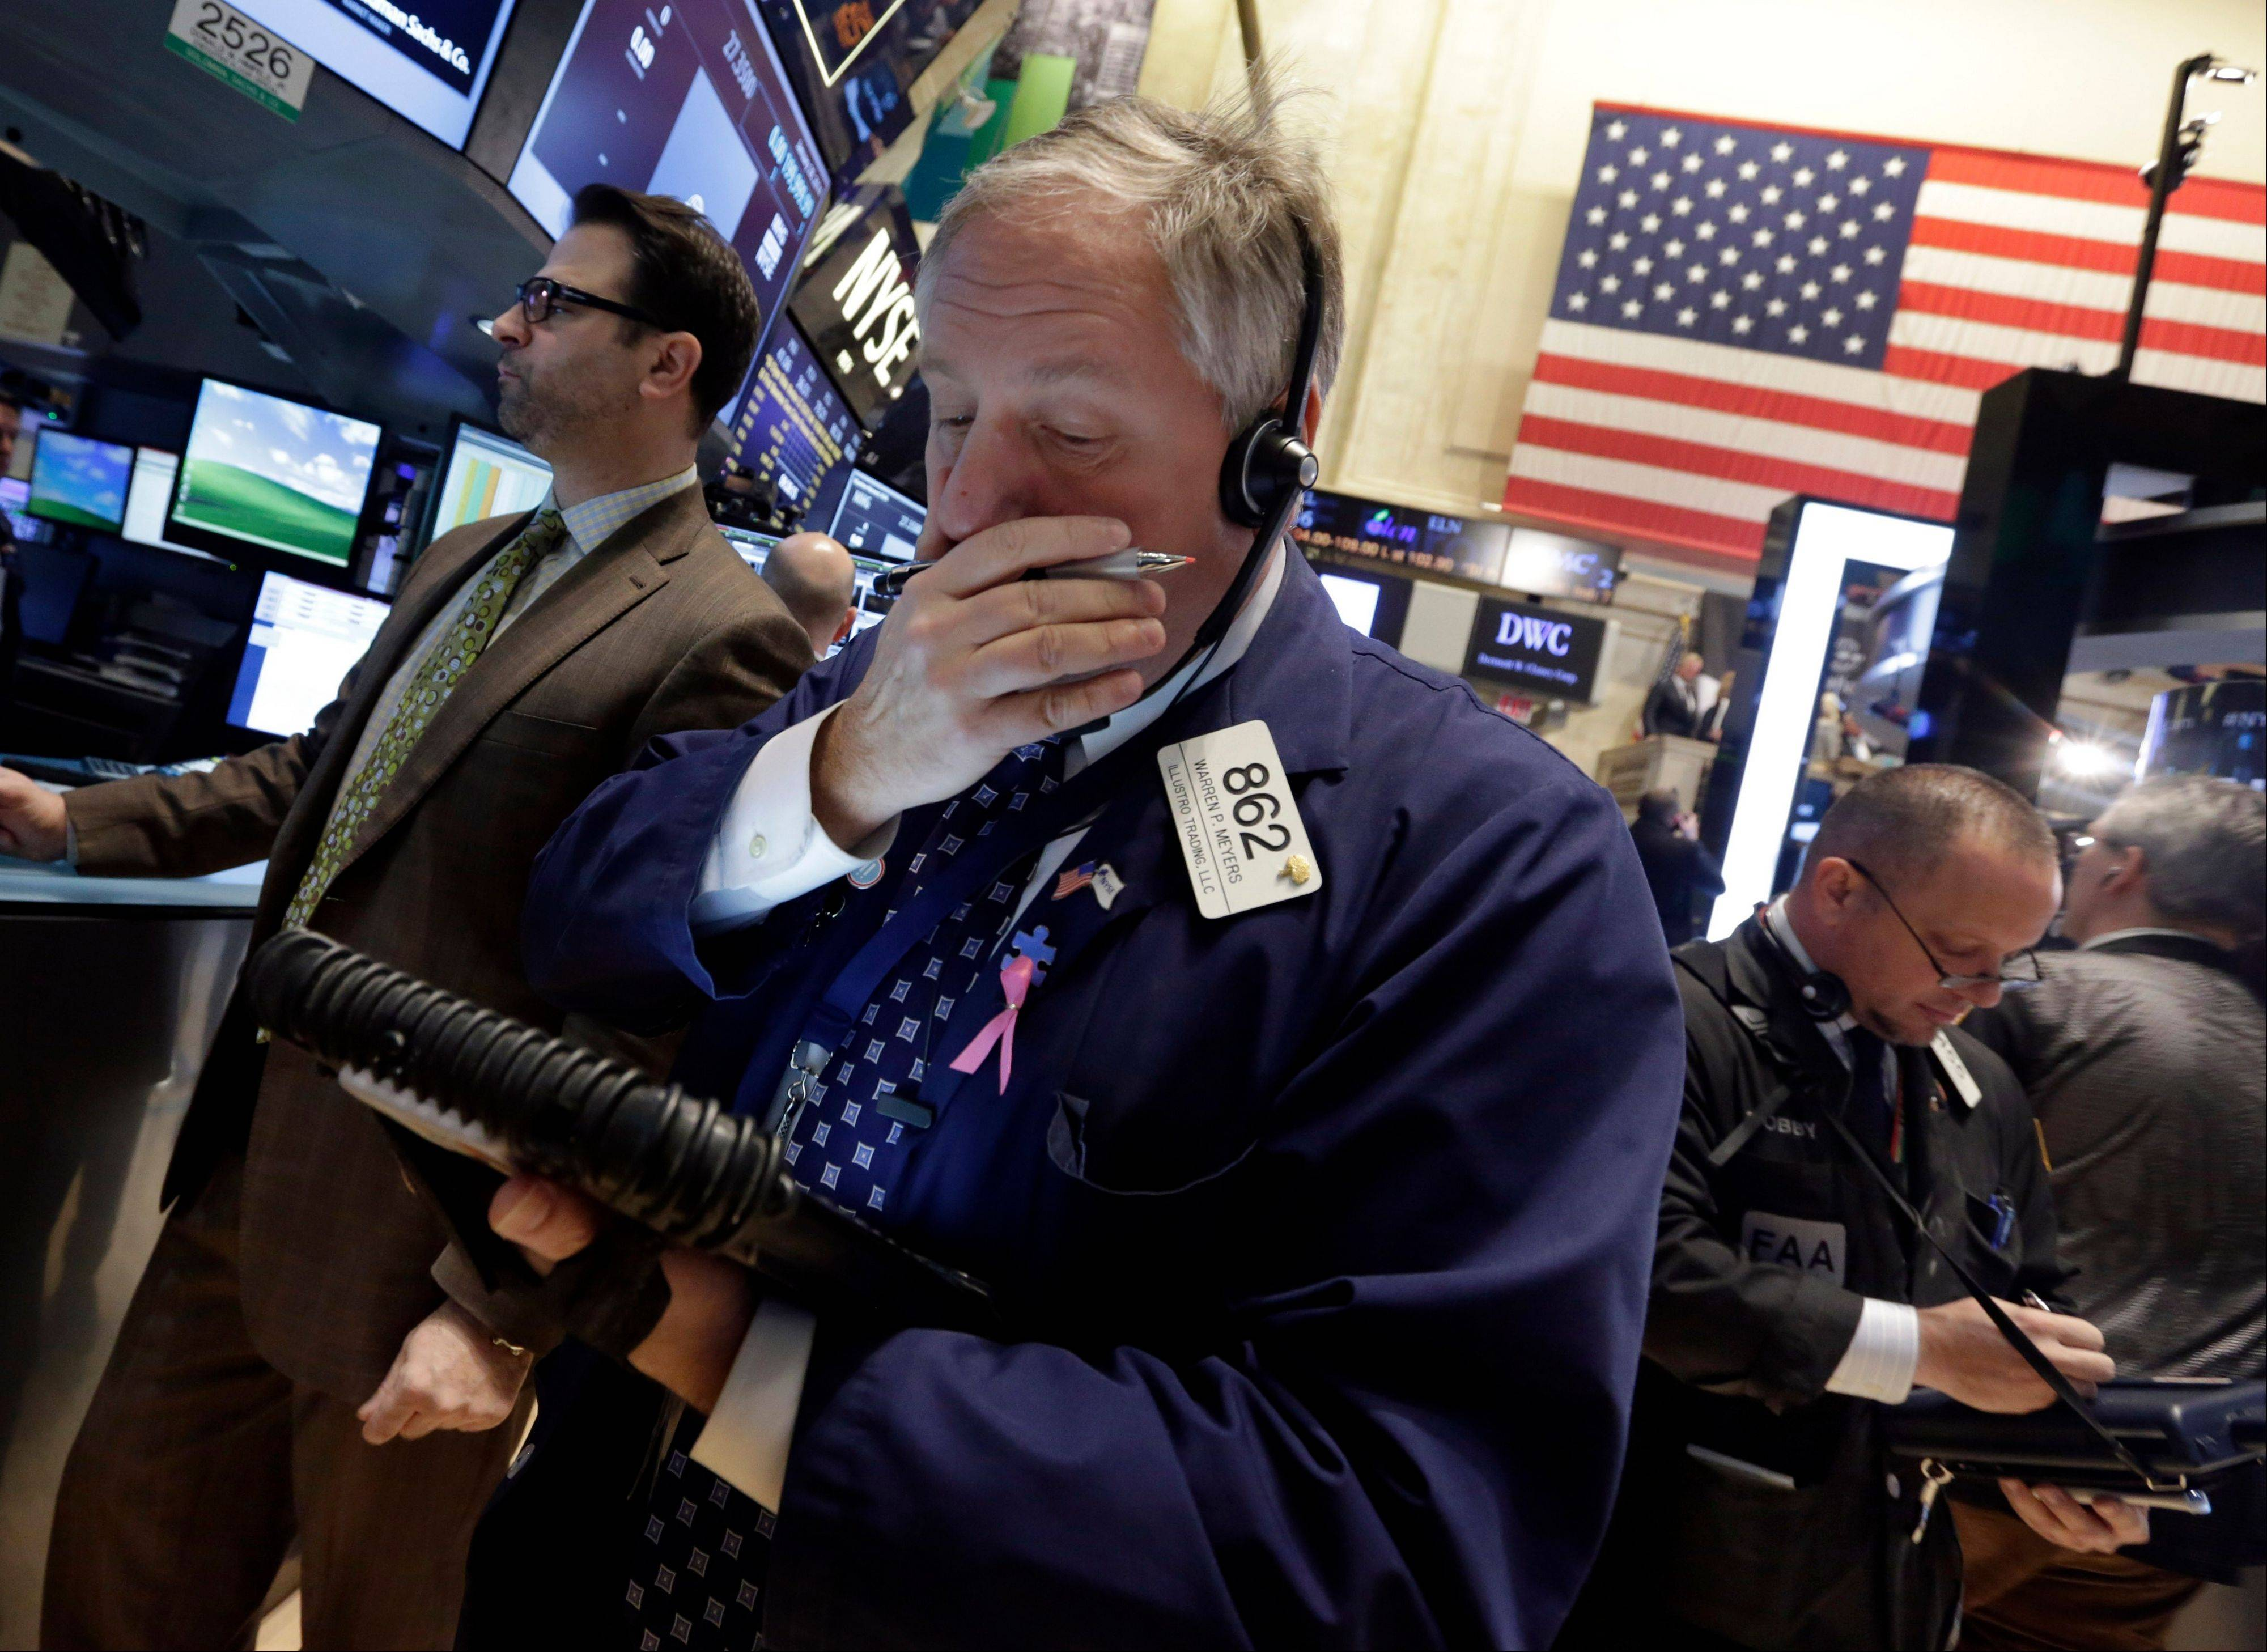 U.S. stocks rose Tuesday, with the Standard & Poor�s 500 Index rebounding from its worst slump since June, as earnings at companies from Pfizer Inc. to D.R. Horton Inc. topped estimates and consumer confidence increased ahead of a Federal Reserve policy meeting.